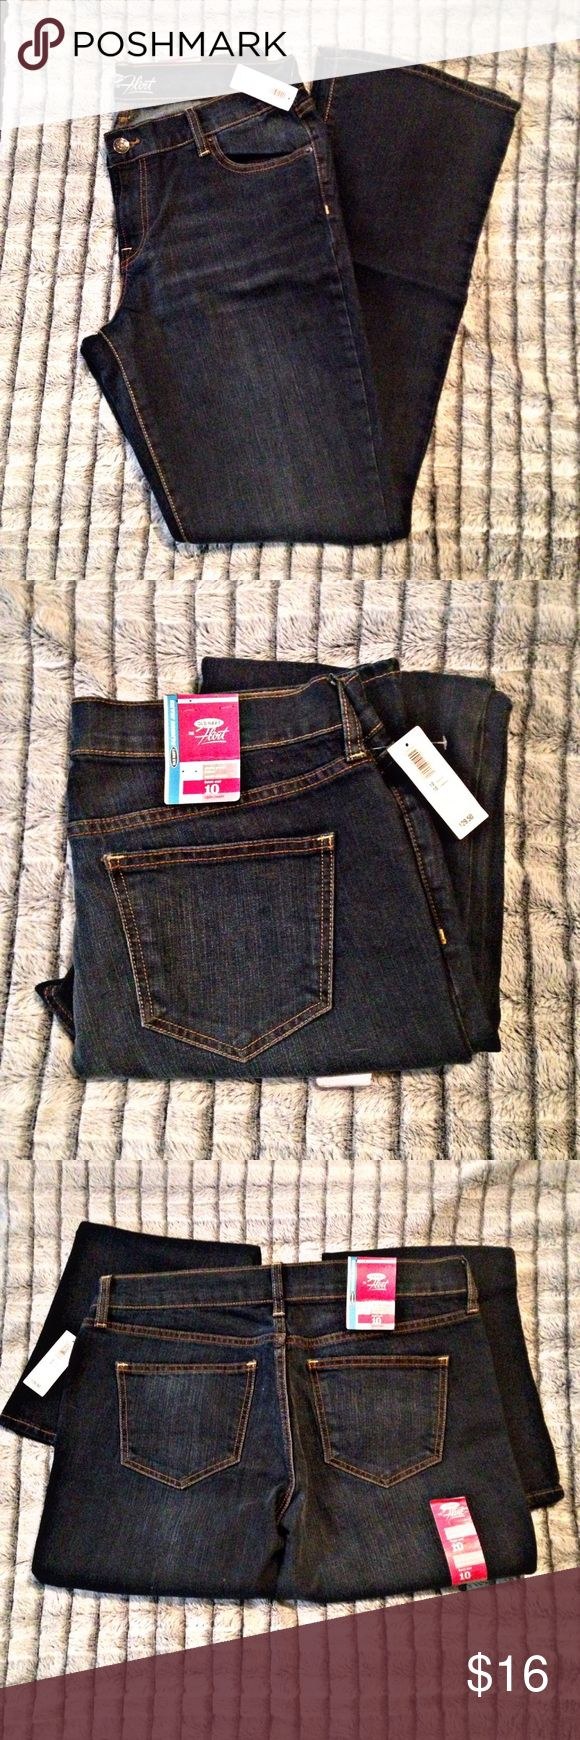 "Old Navy bootcut jeans Old Navy bootcut 'the flirt' jeans. Size 10 regular, dark wash color. Has a bit of stretch to them. 16"" across the front at the top. 9"" from waist to crotch. 31"" inseam. Old Navy Jeans Boot Cut"